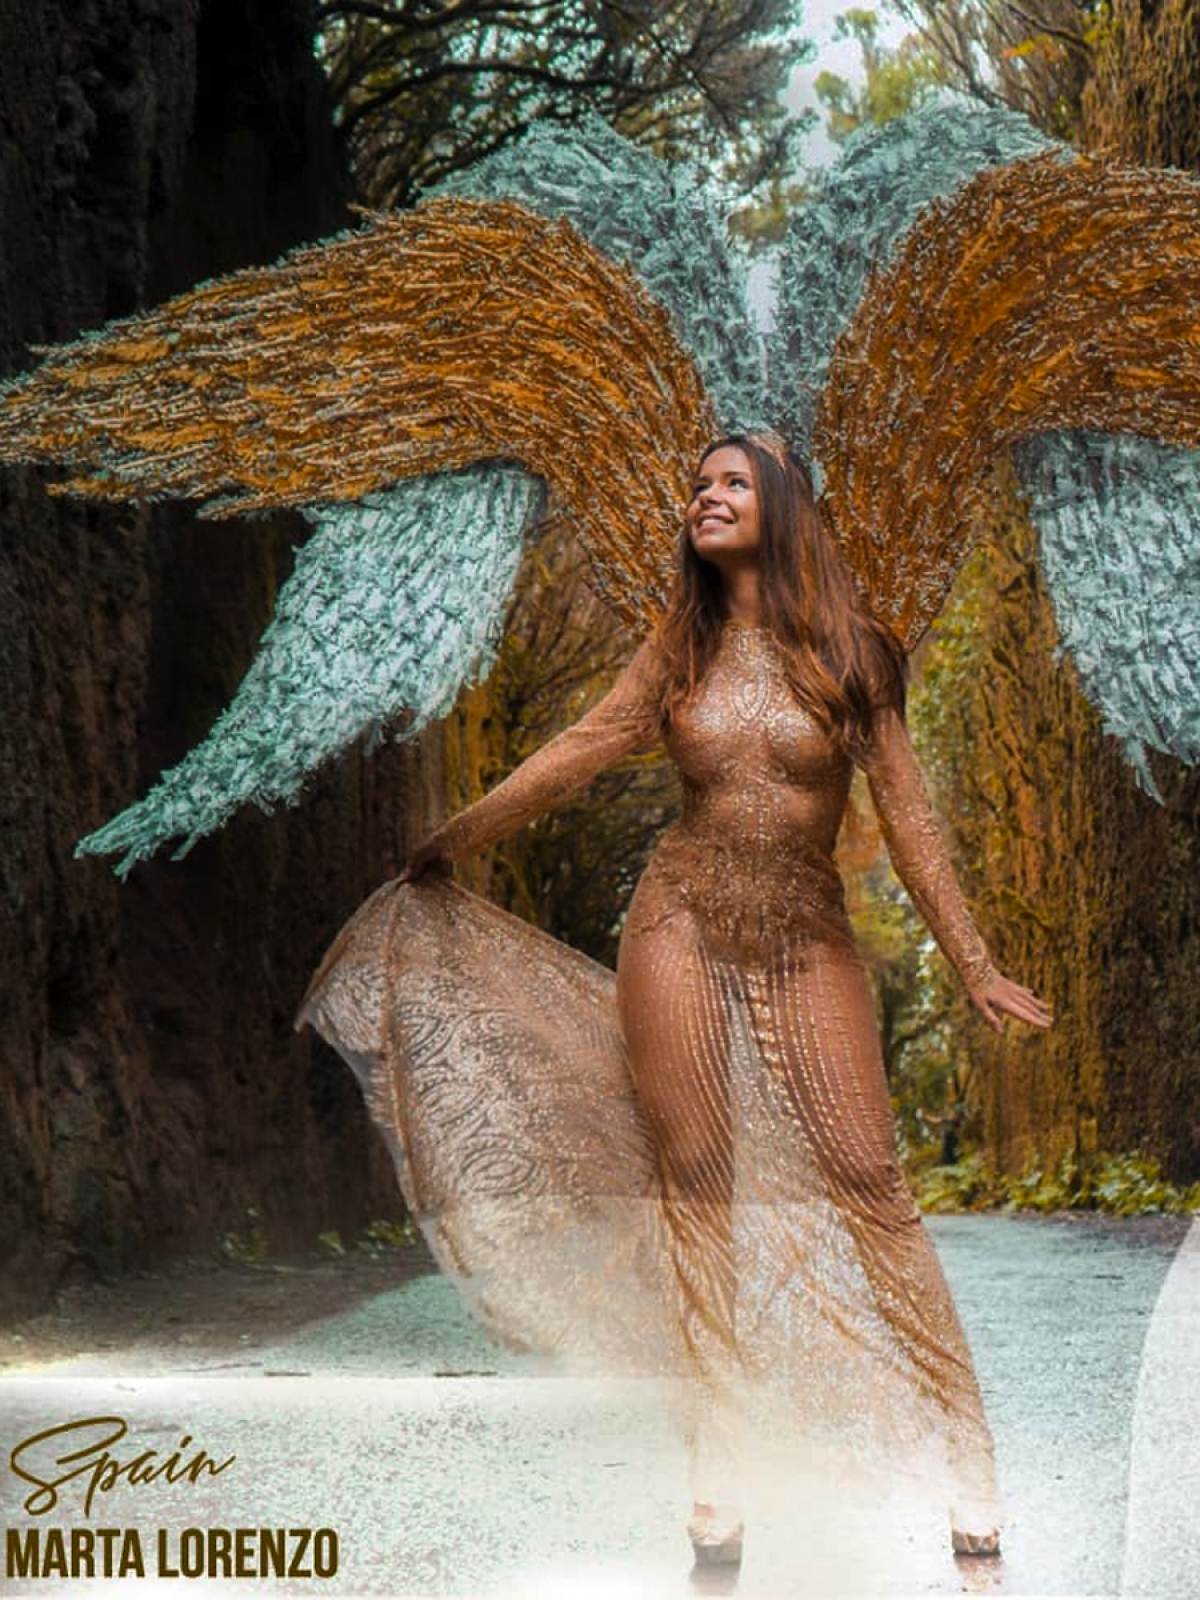 Here are some of the amazing images of each of the beauty pageant's contestants as they don angel costumes:Marta Lorenzo of Spain